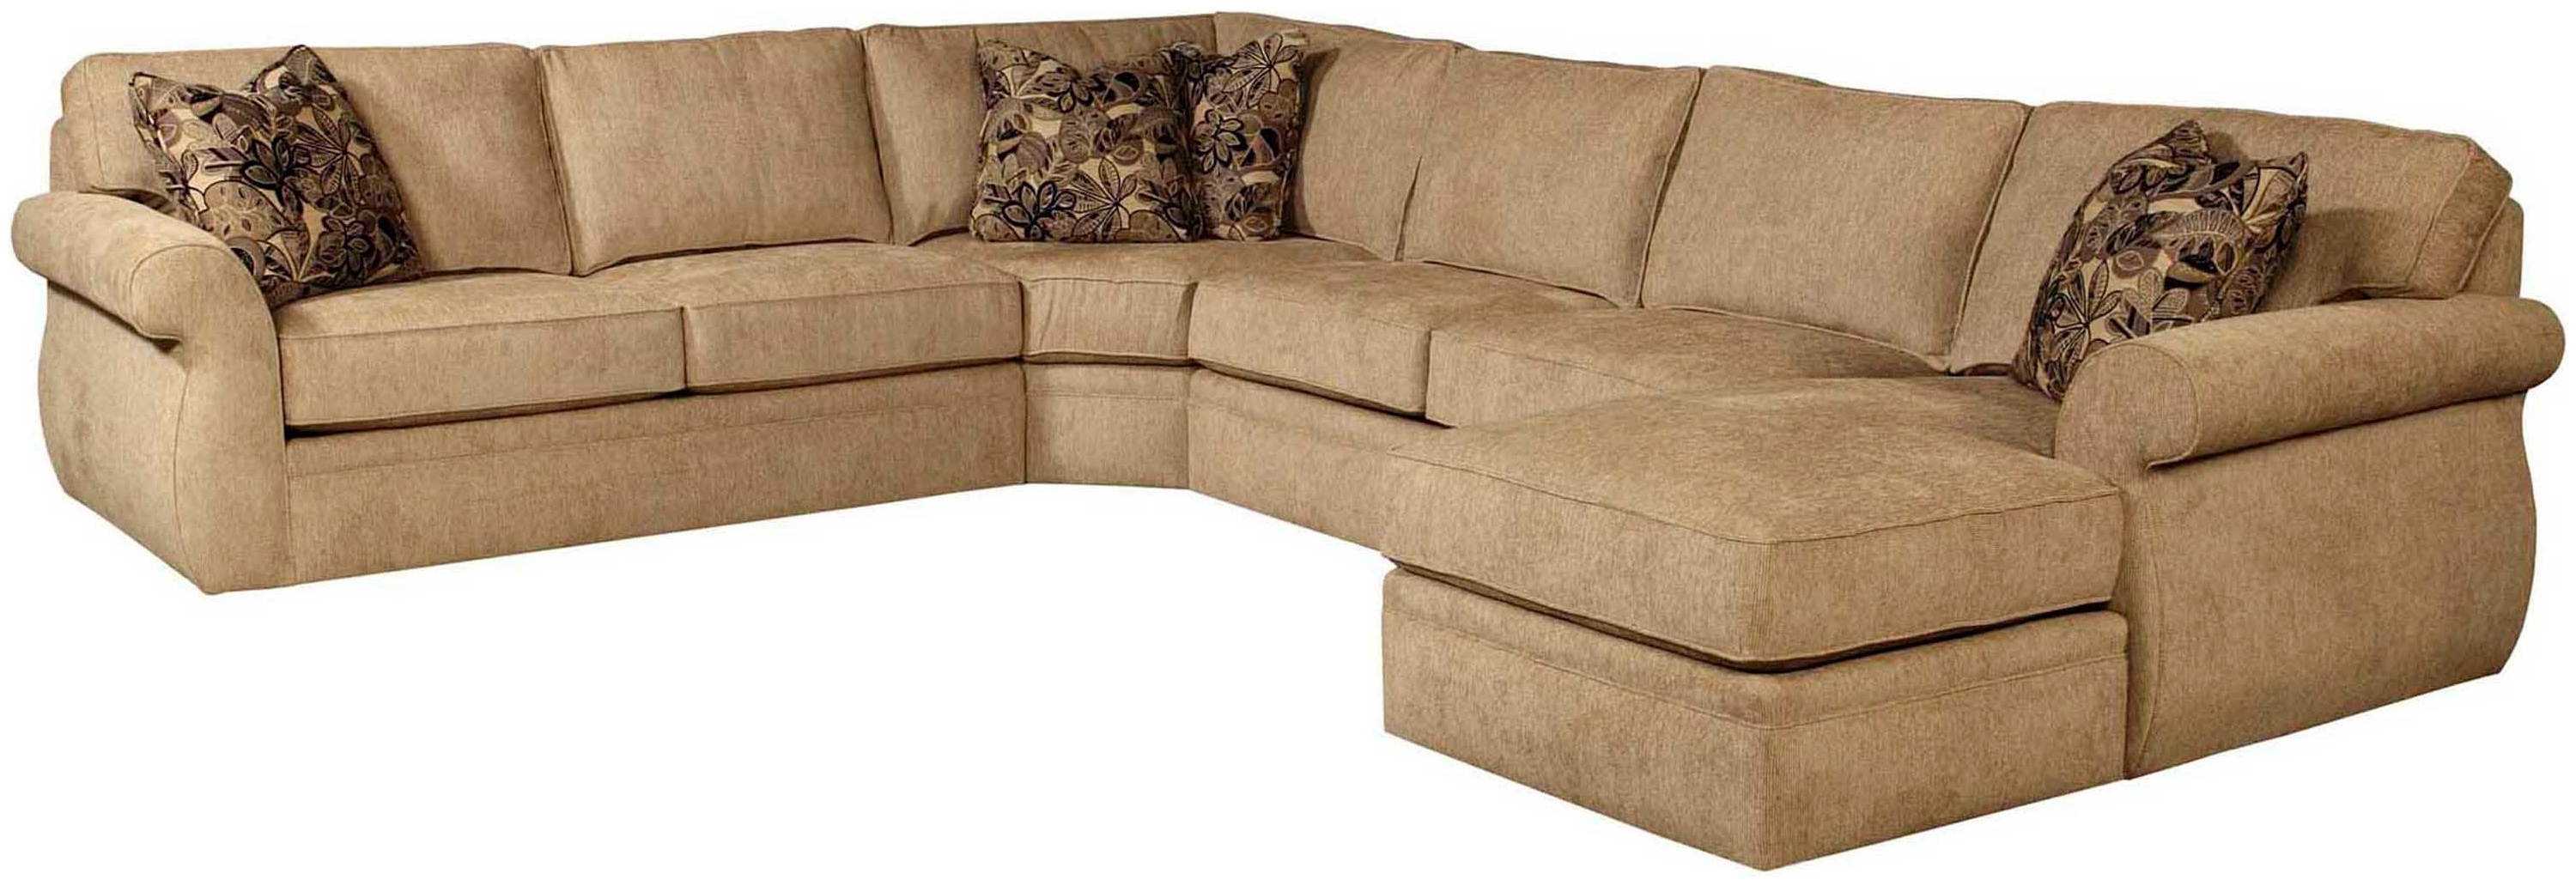 Well Known Broyhill Veronica 4Pc Chaise Sectional With Regard To Sectional Sofas At Broyhill (View 15 of 15)